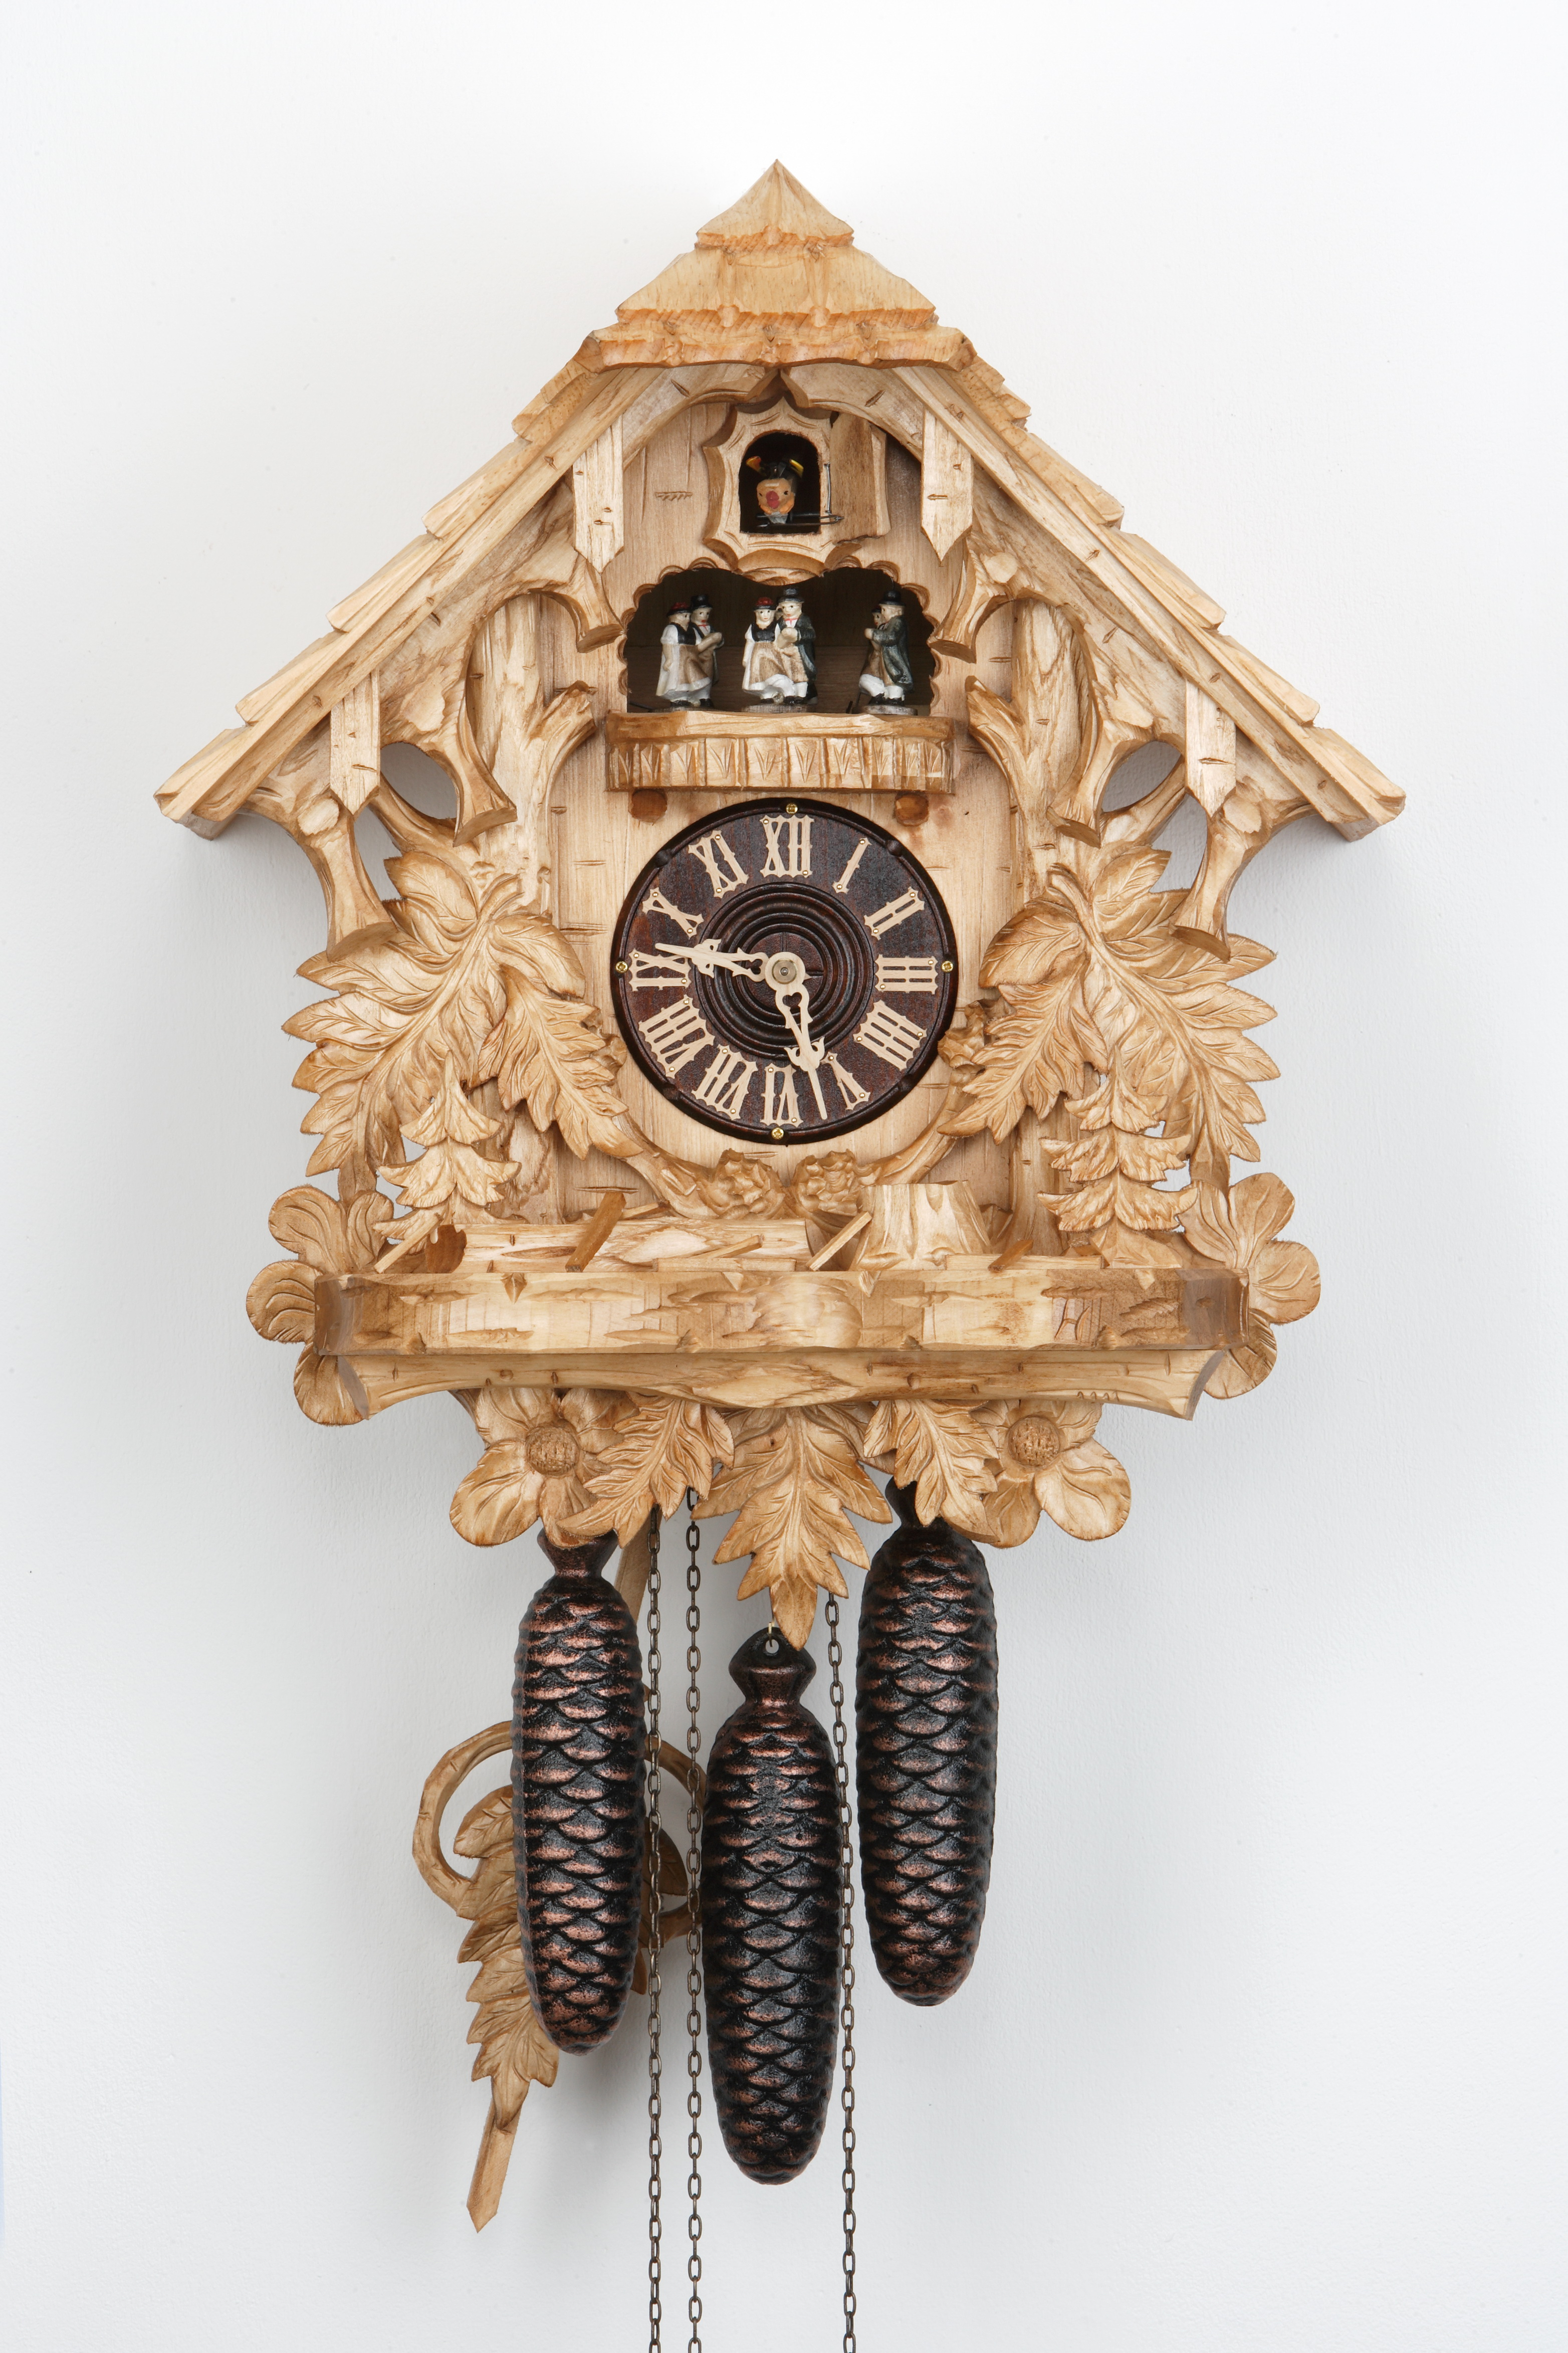 8 Days Music Dancer  Cuckoo Clock Black Forest House with fern leaves